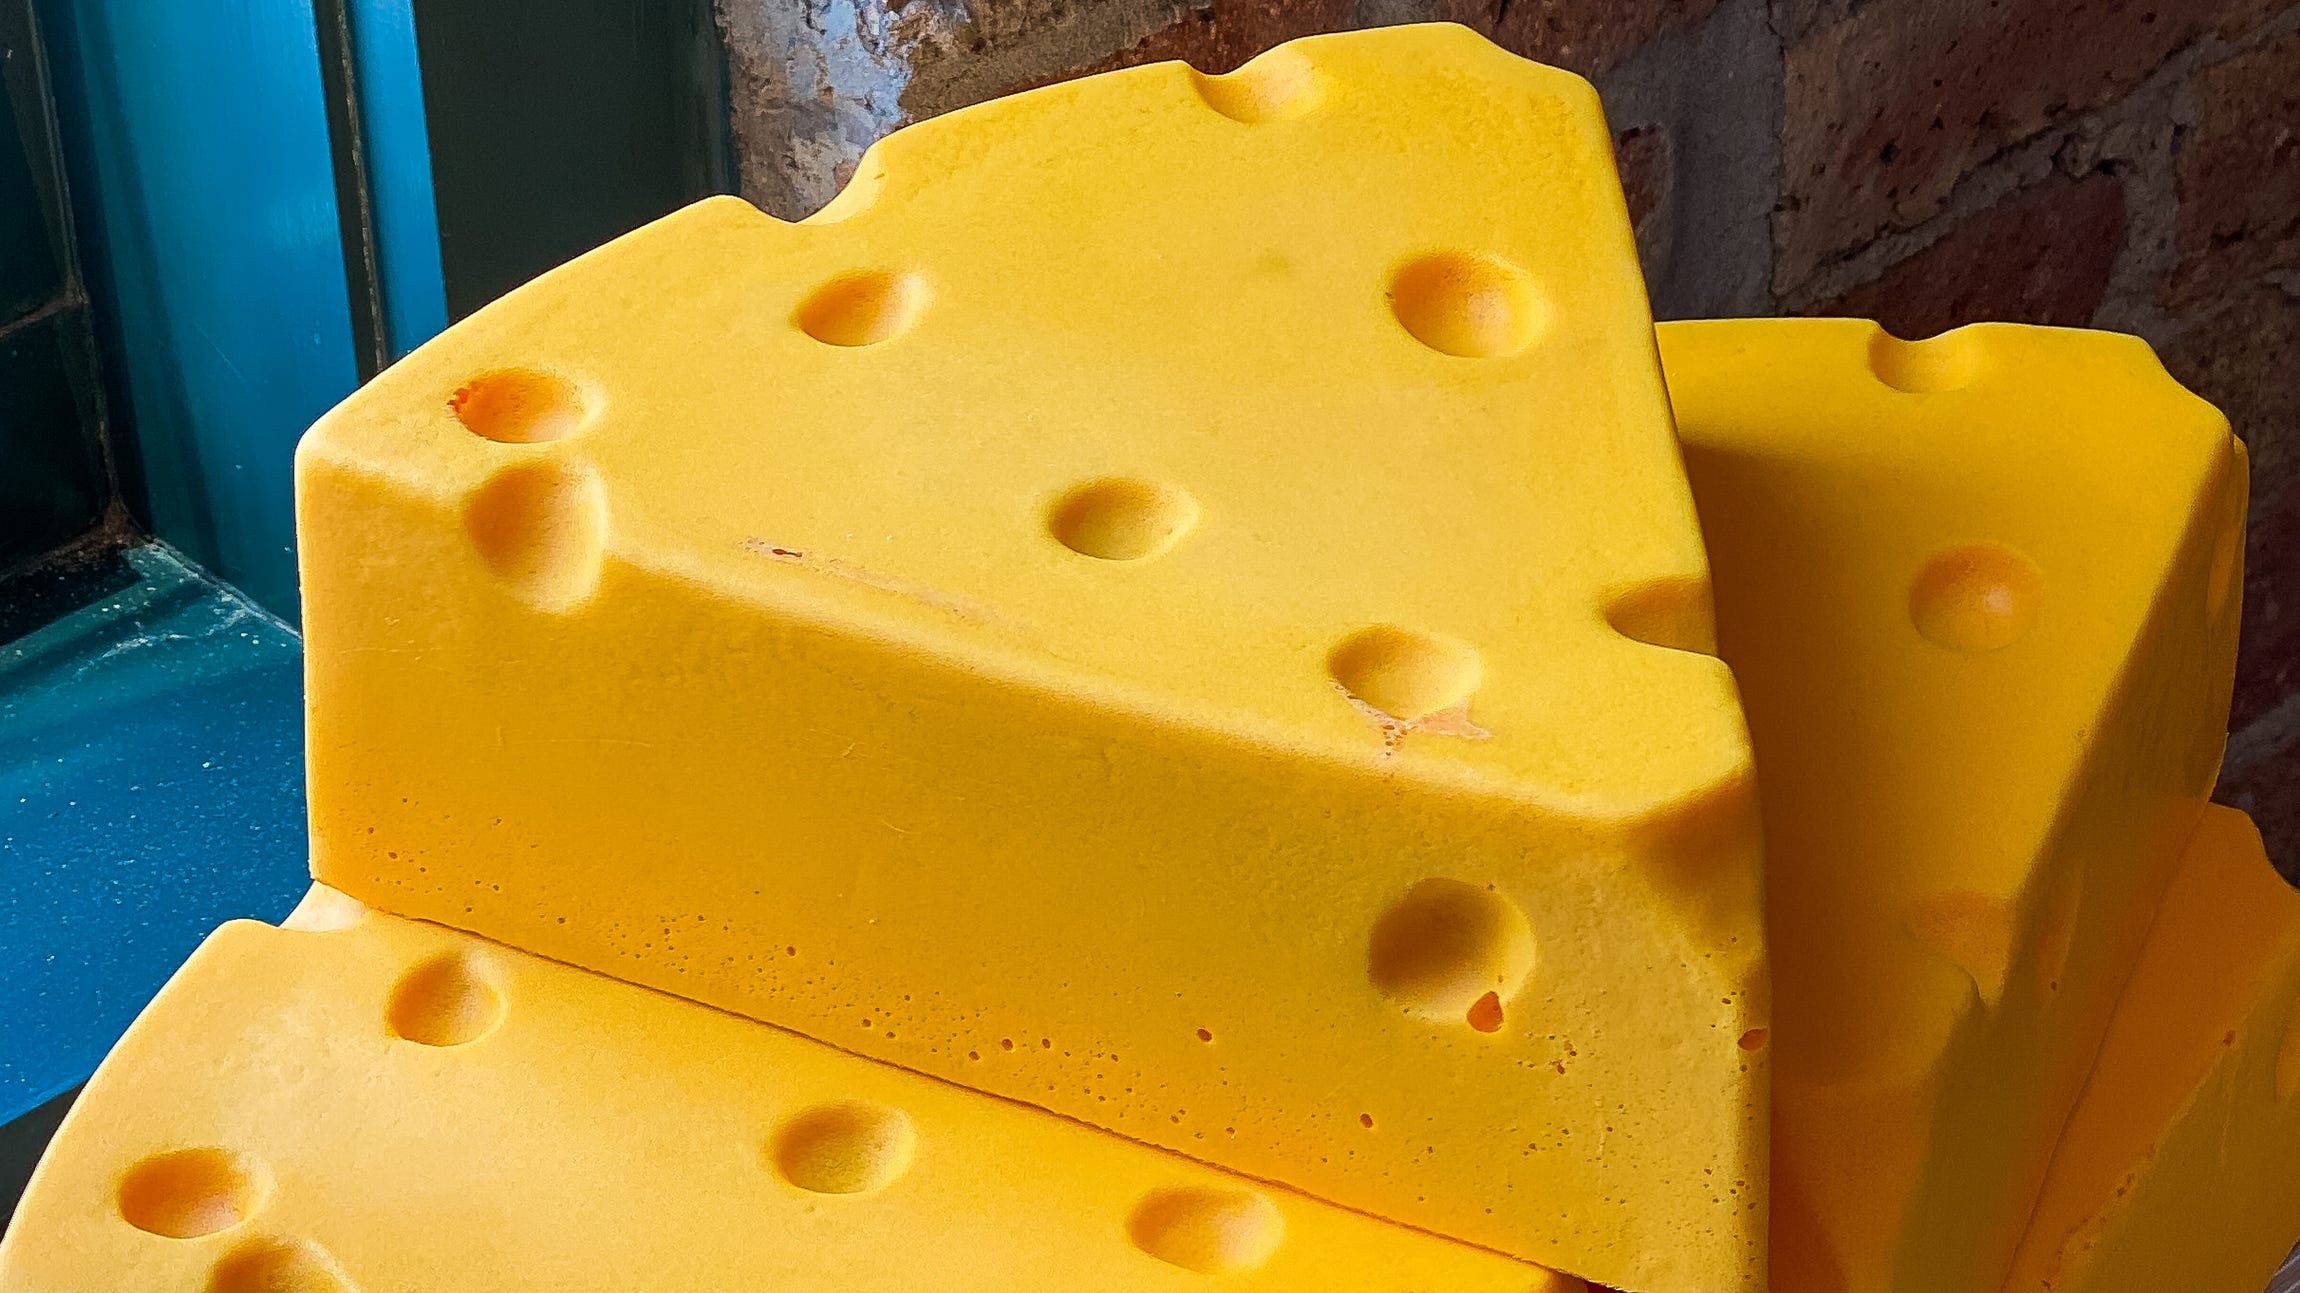 cheesehead-foamation-factory-made-in-america-2021-wisconsin-cnet-54